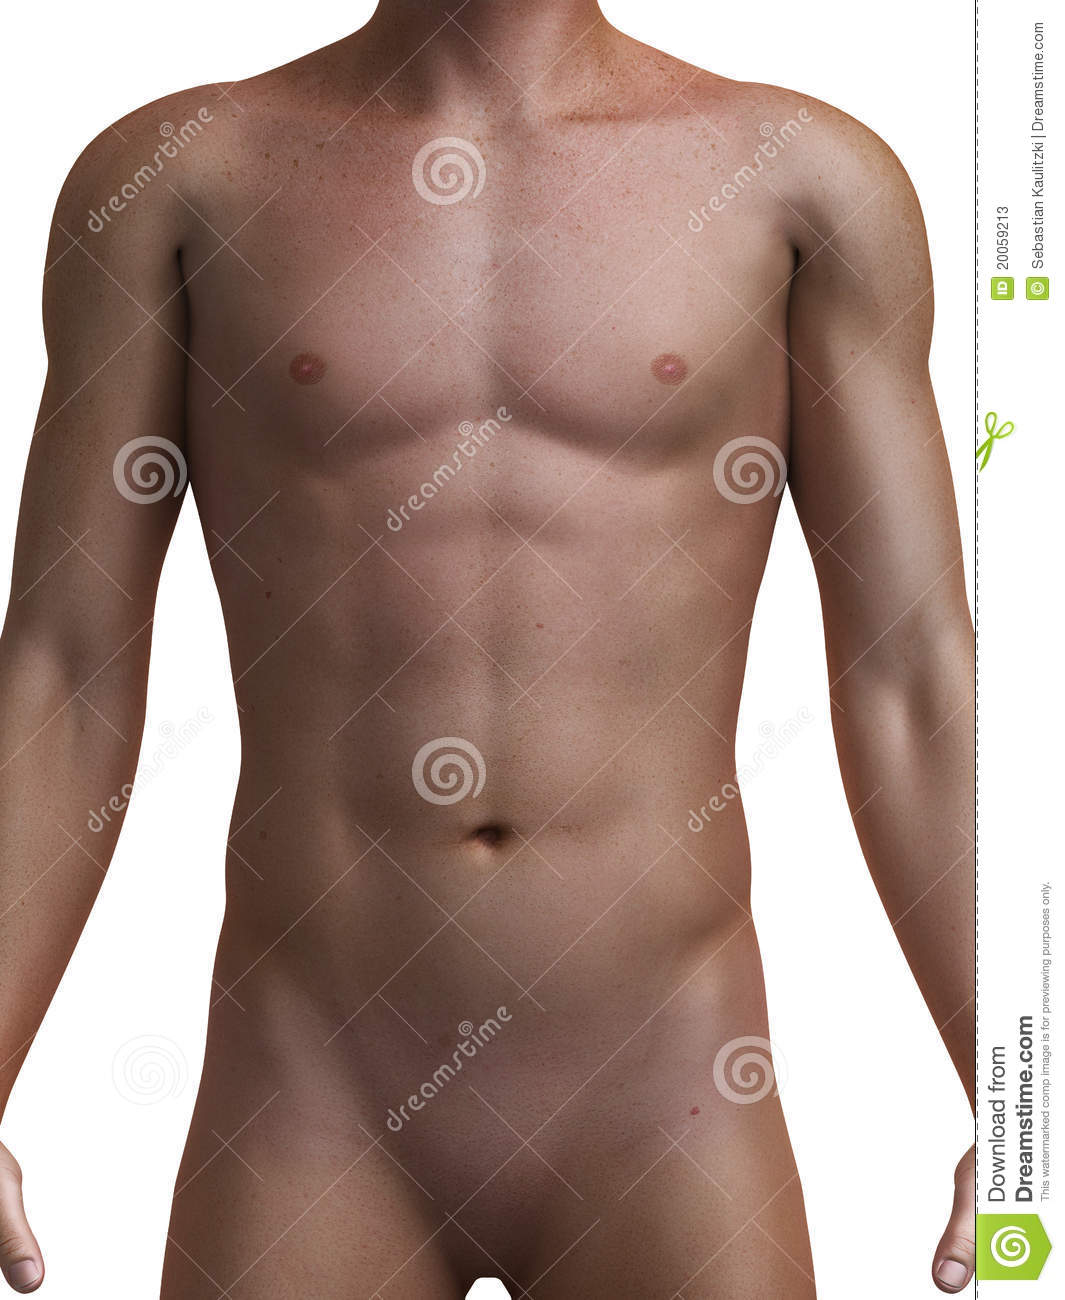 male body stock illustration. illustration of athlete - 20059213